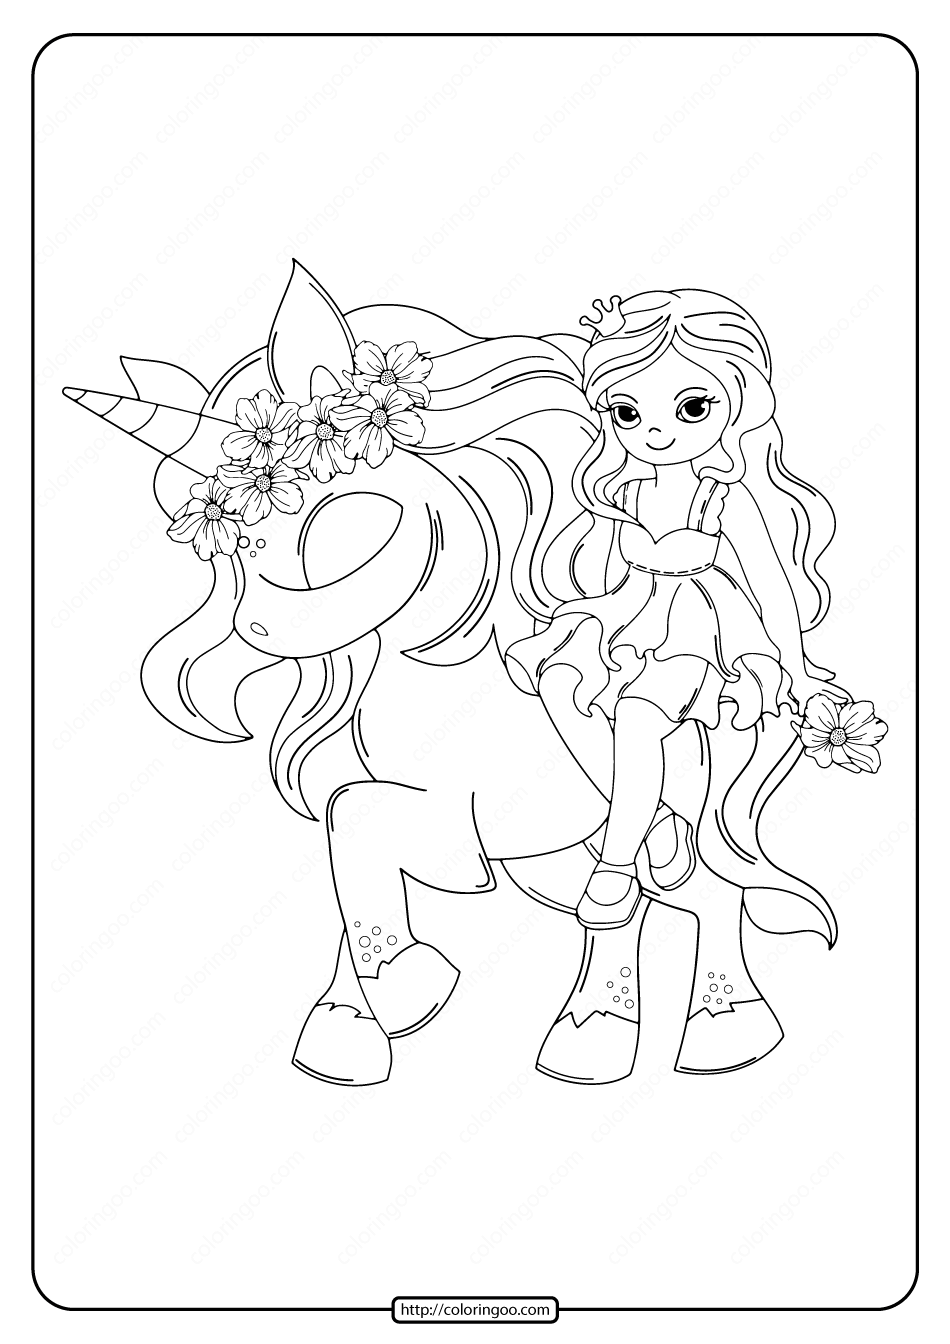 Printable Unicorn with Princess Coloring Pages